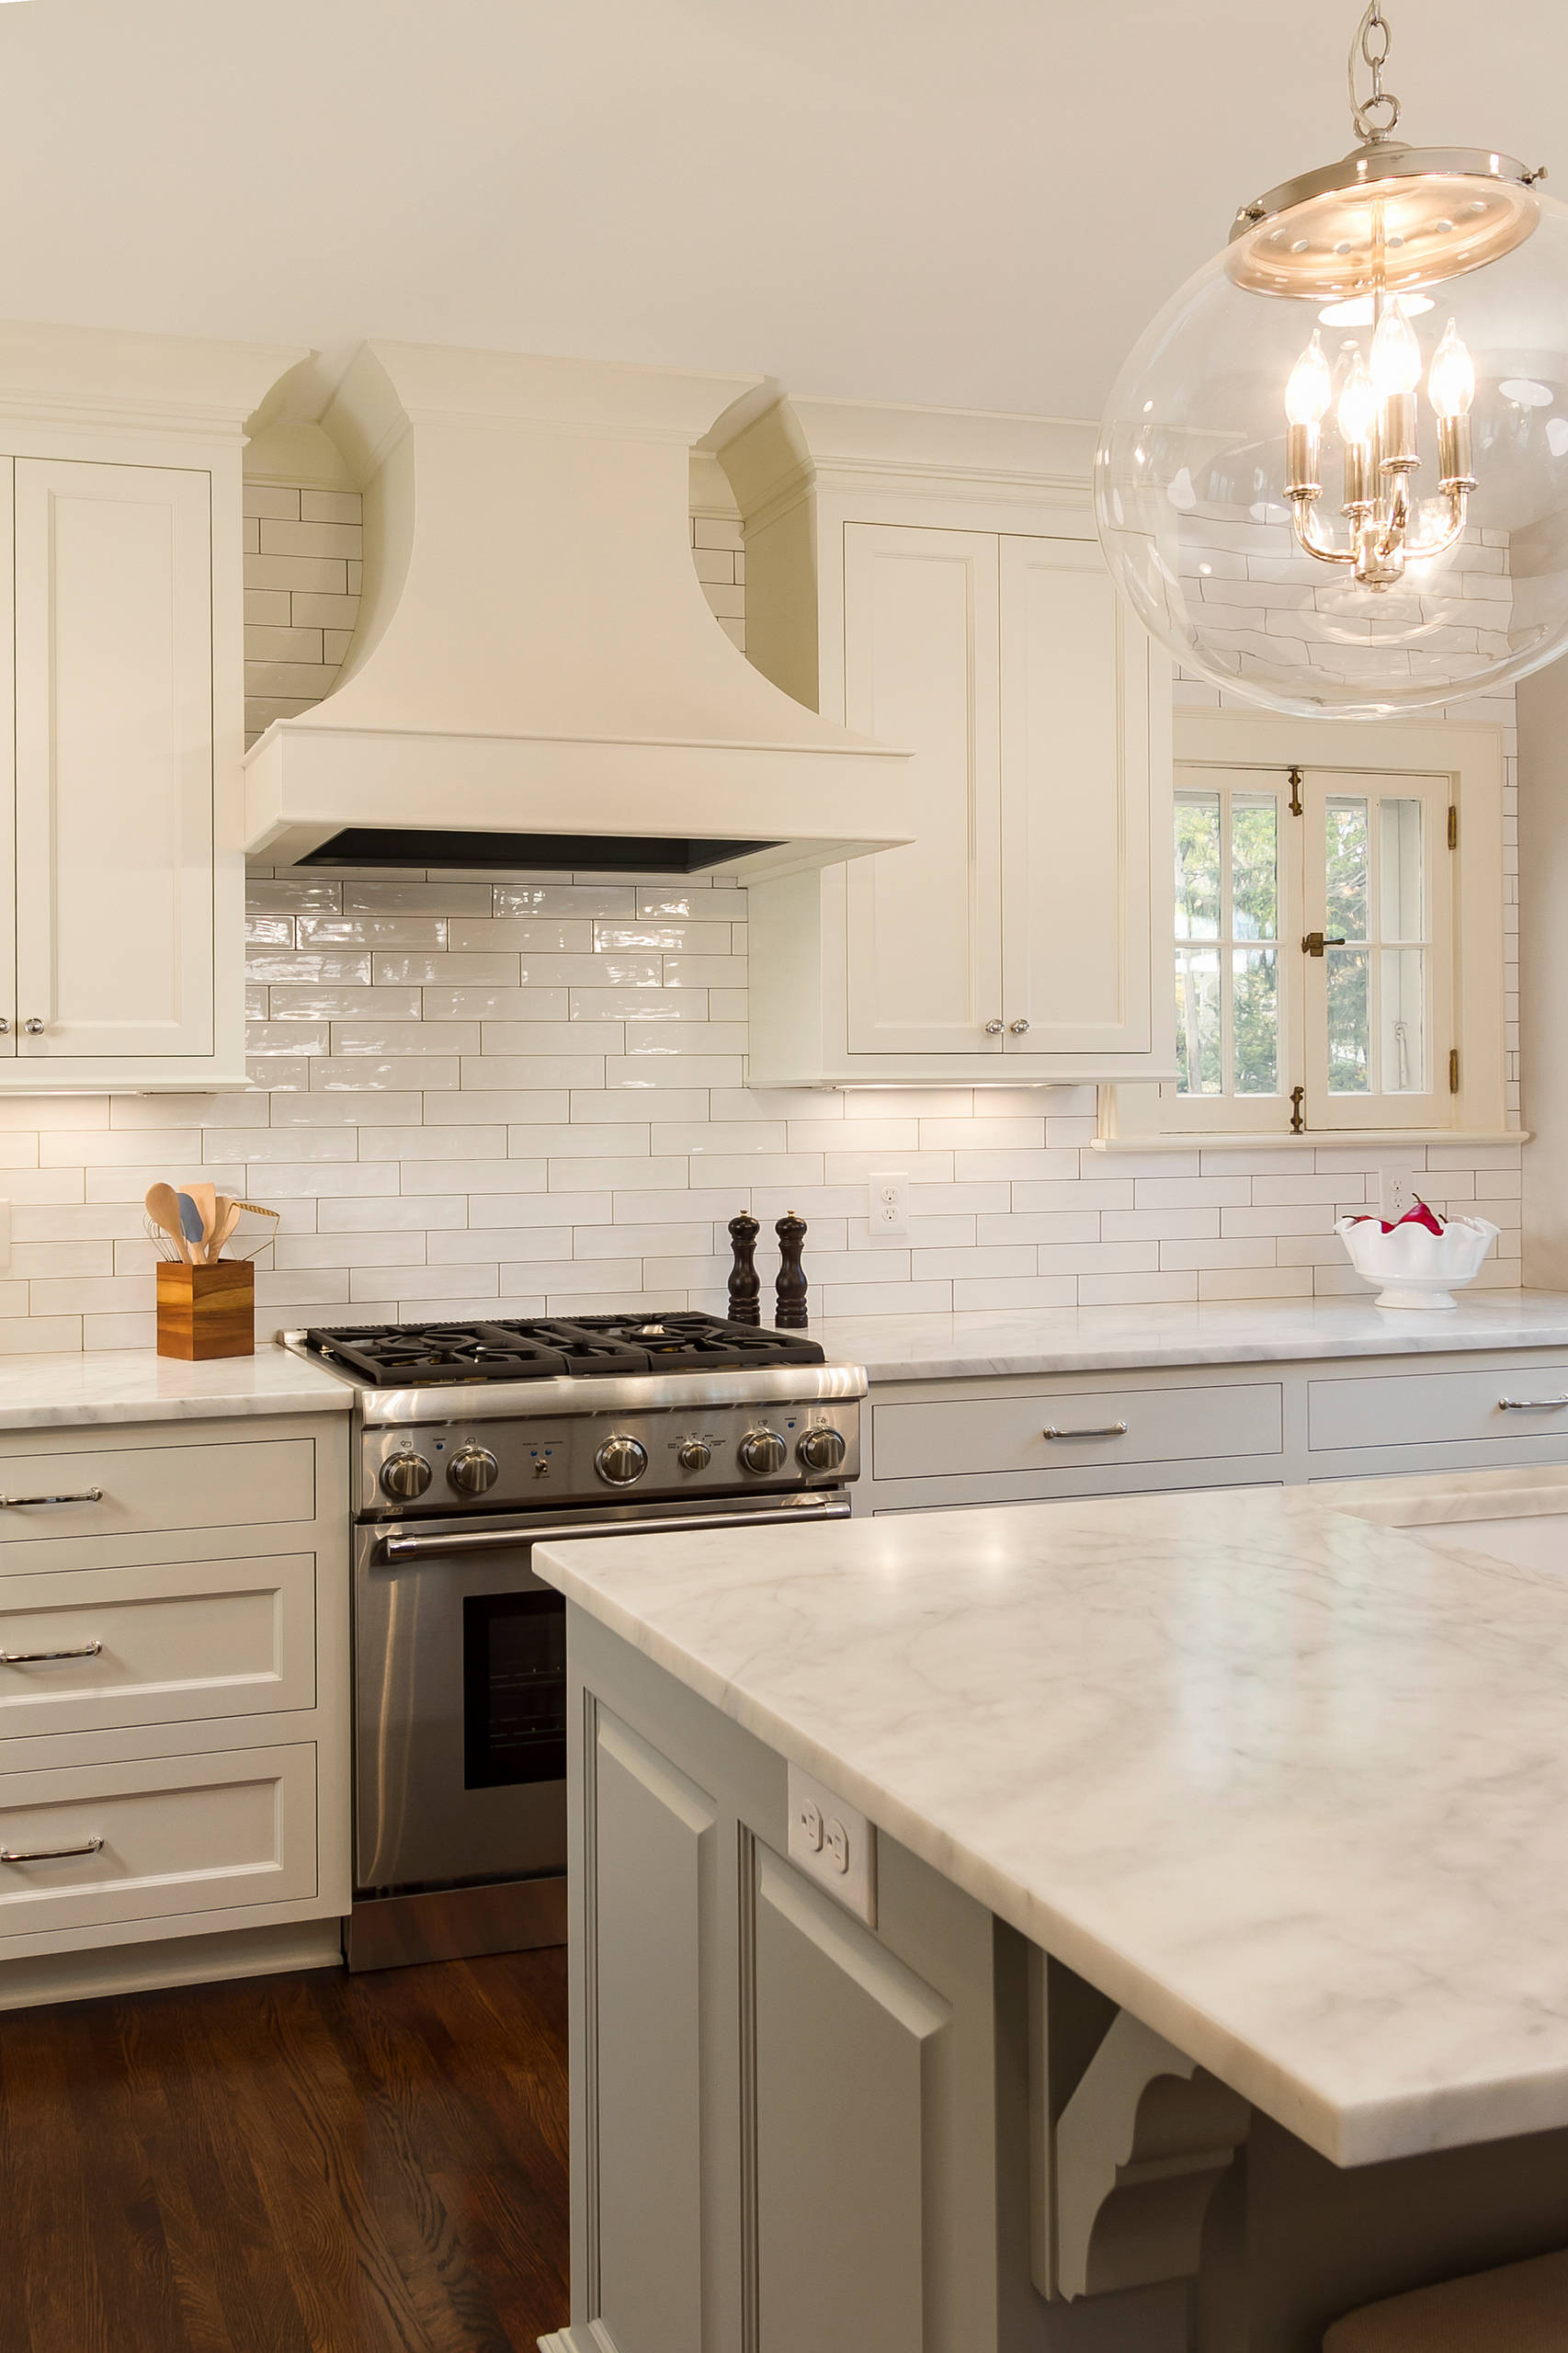 Reimagined Historic Fulton Kitchen